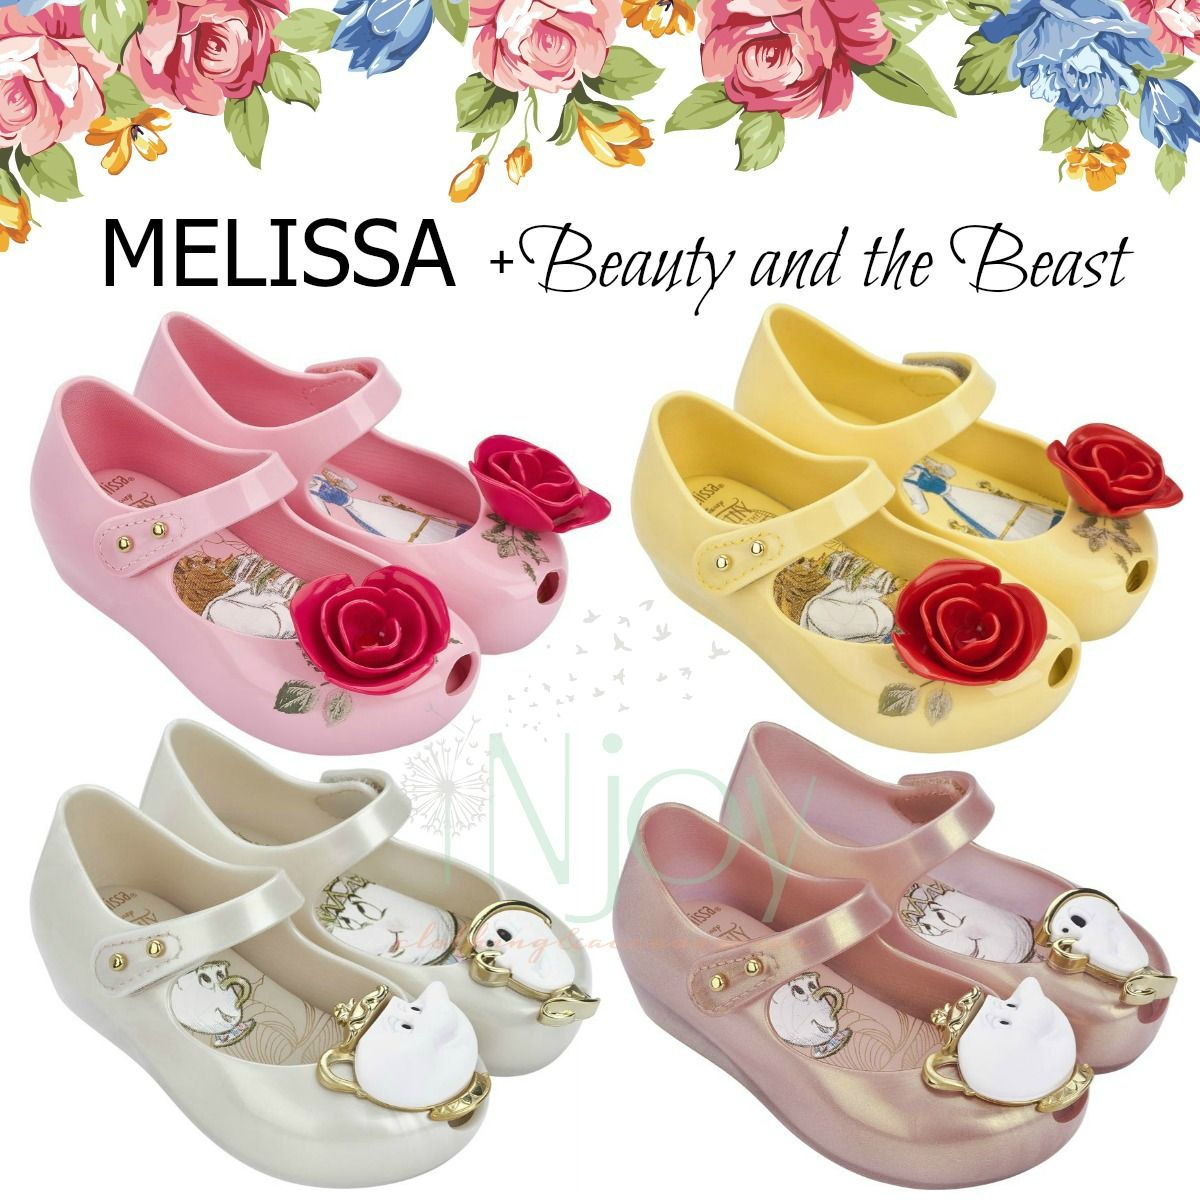 1998723ad907 MELISSA + Beauty and the Beast toddler girl shoes!  Disney  MiniMelissa   shopinjoy  Belle